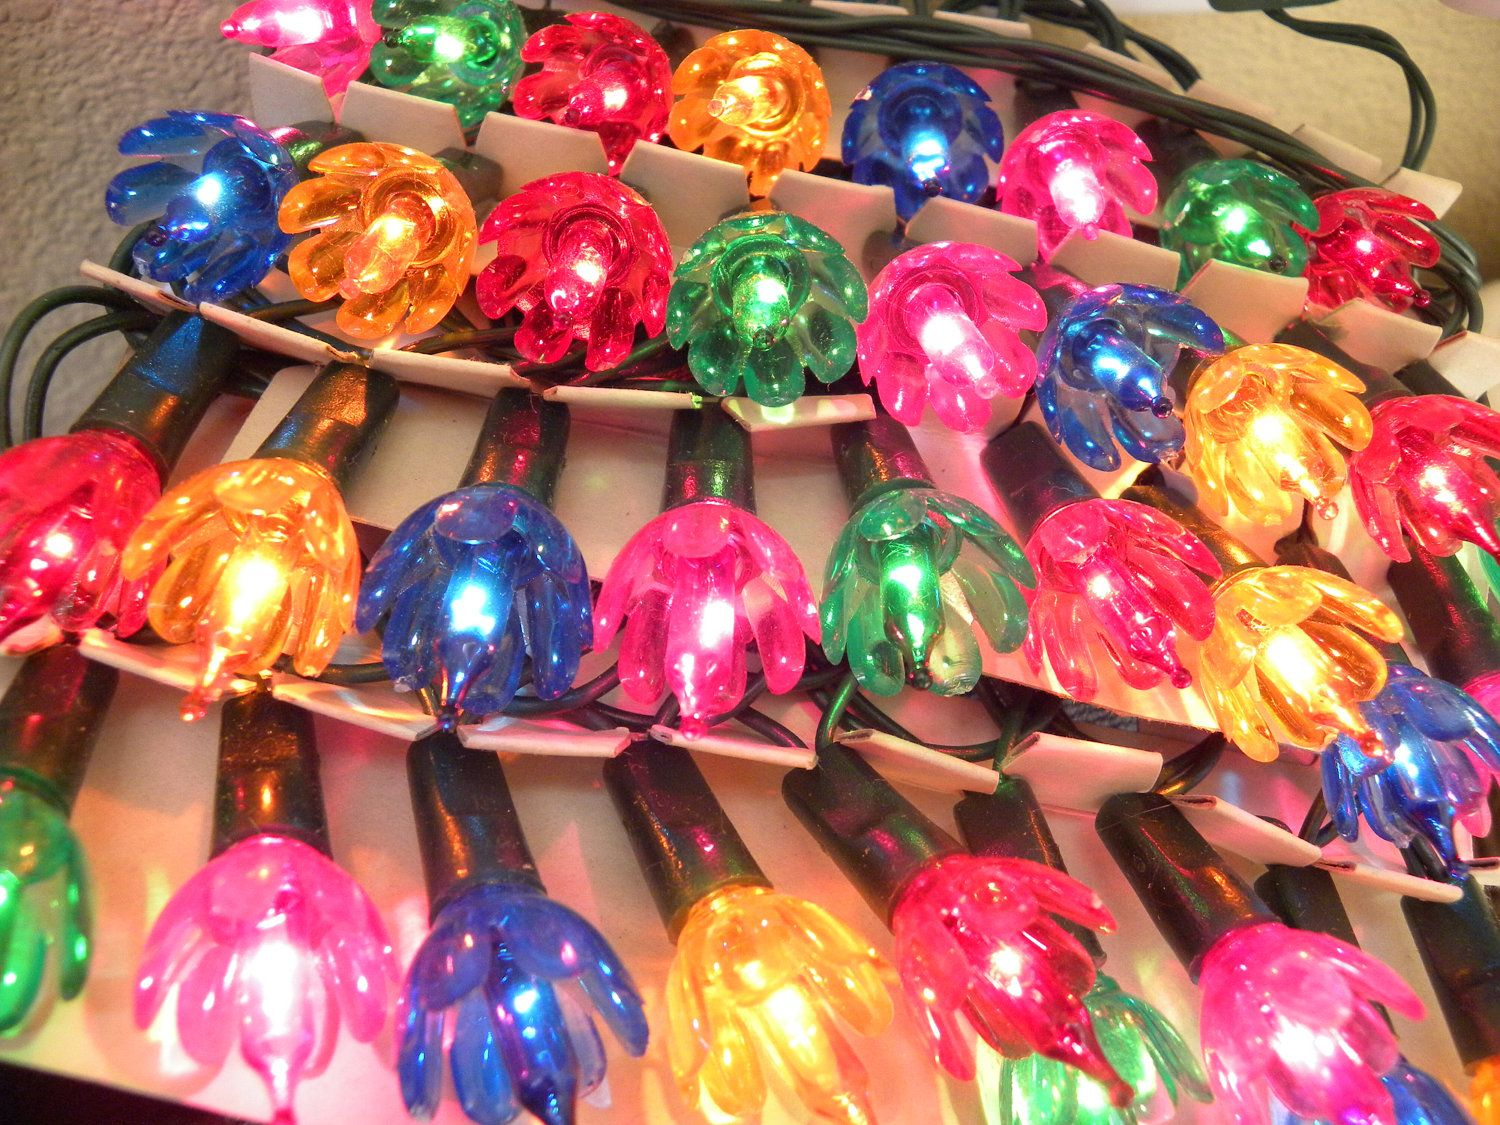 I Love These Kind Of Light Always Reminds Me Of Christmas When I Was A Kid Vintage Christmas Lights Vintage Christmas Tree Decorations Vintage Christmas Tree